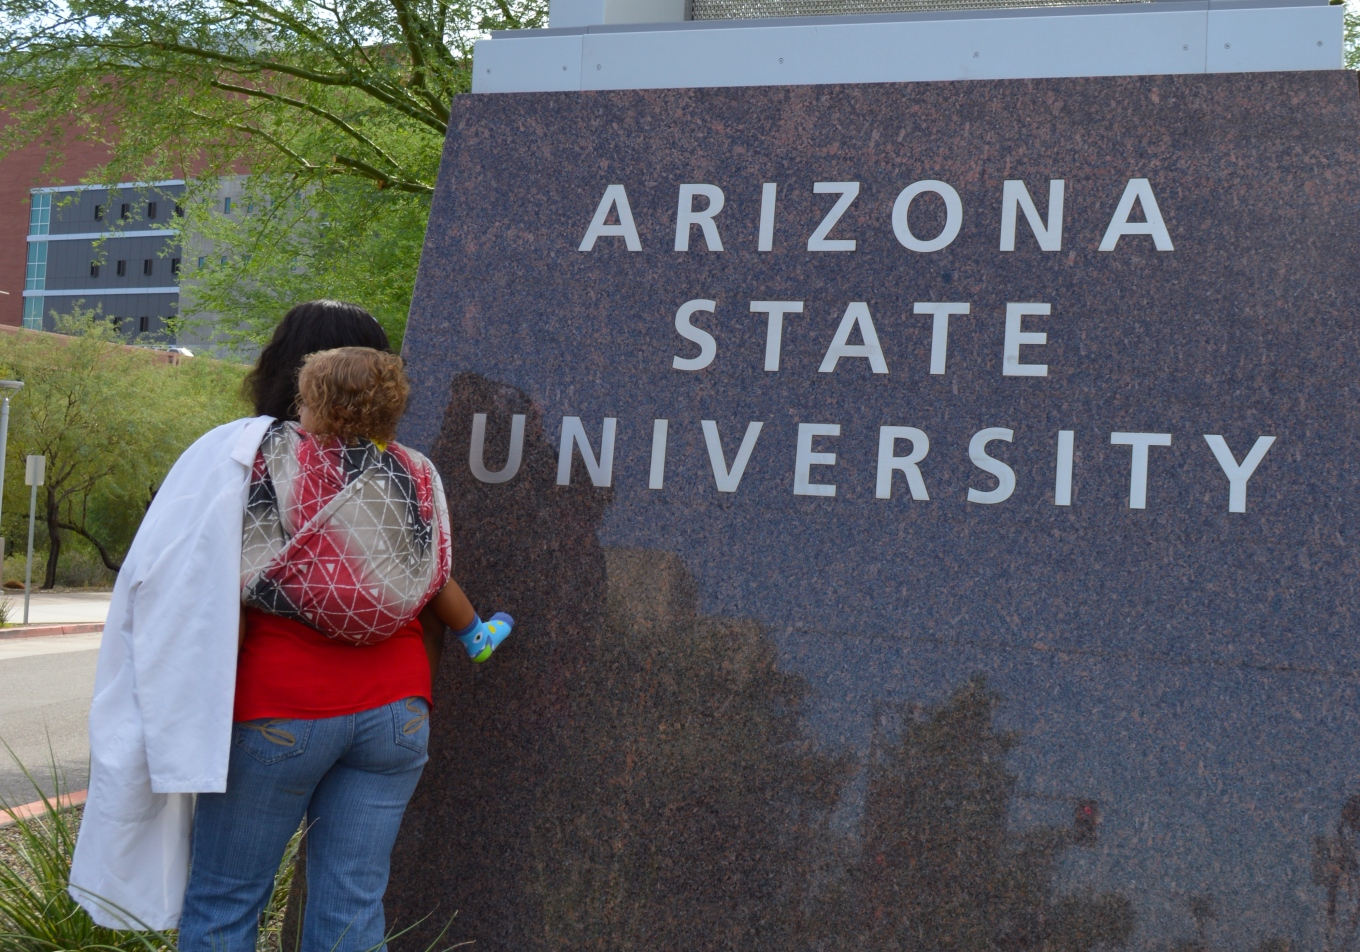 African American Mother wearing her Blond haired, light brown baby in Symmetrical Half Jordan's Back Carry. Momma and Baby stand in front of Arizona State University Sign, the laboratory in the distance. Momma has white labcoat over her left shoulder.